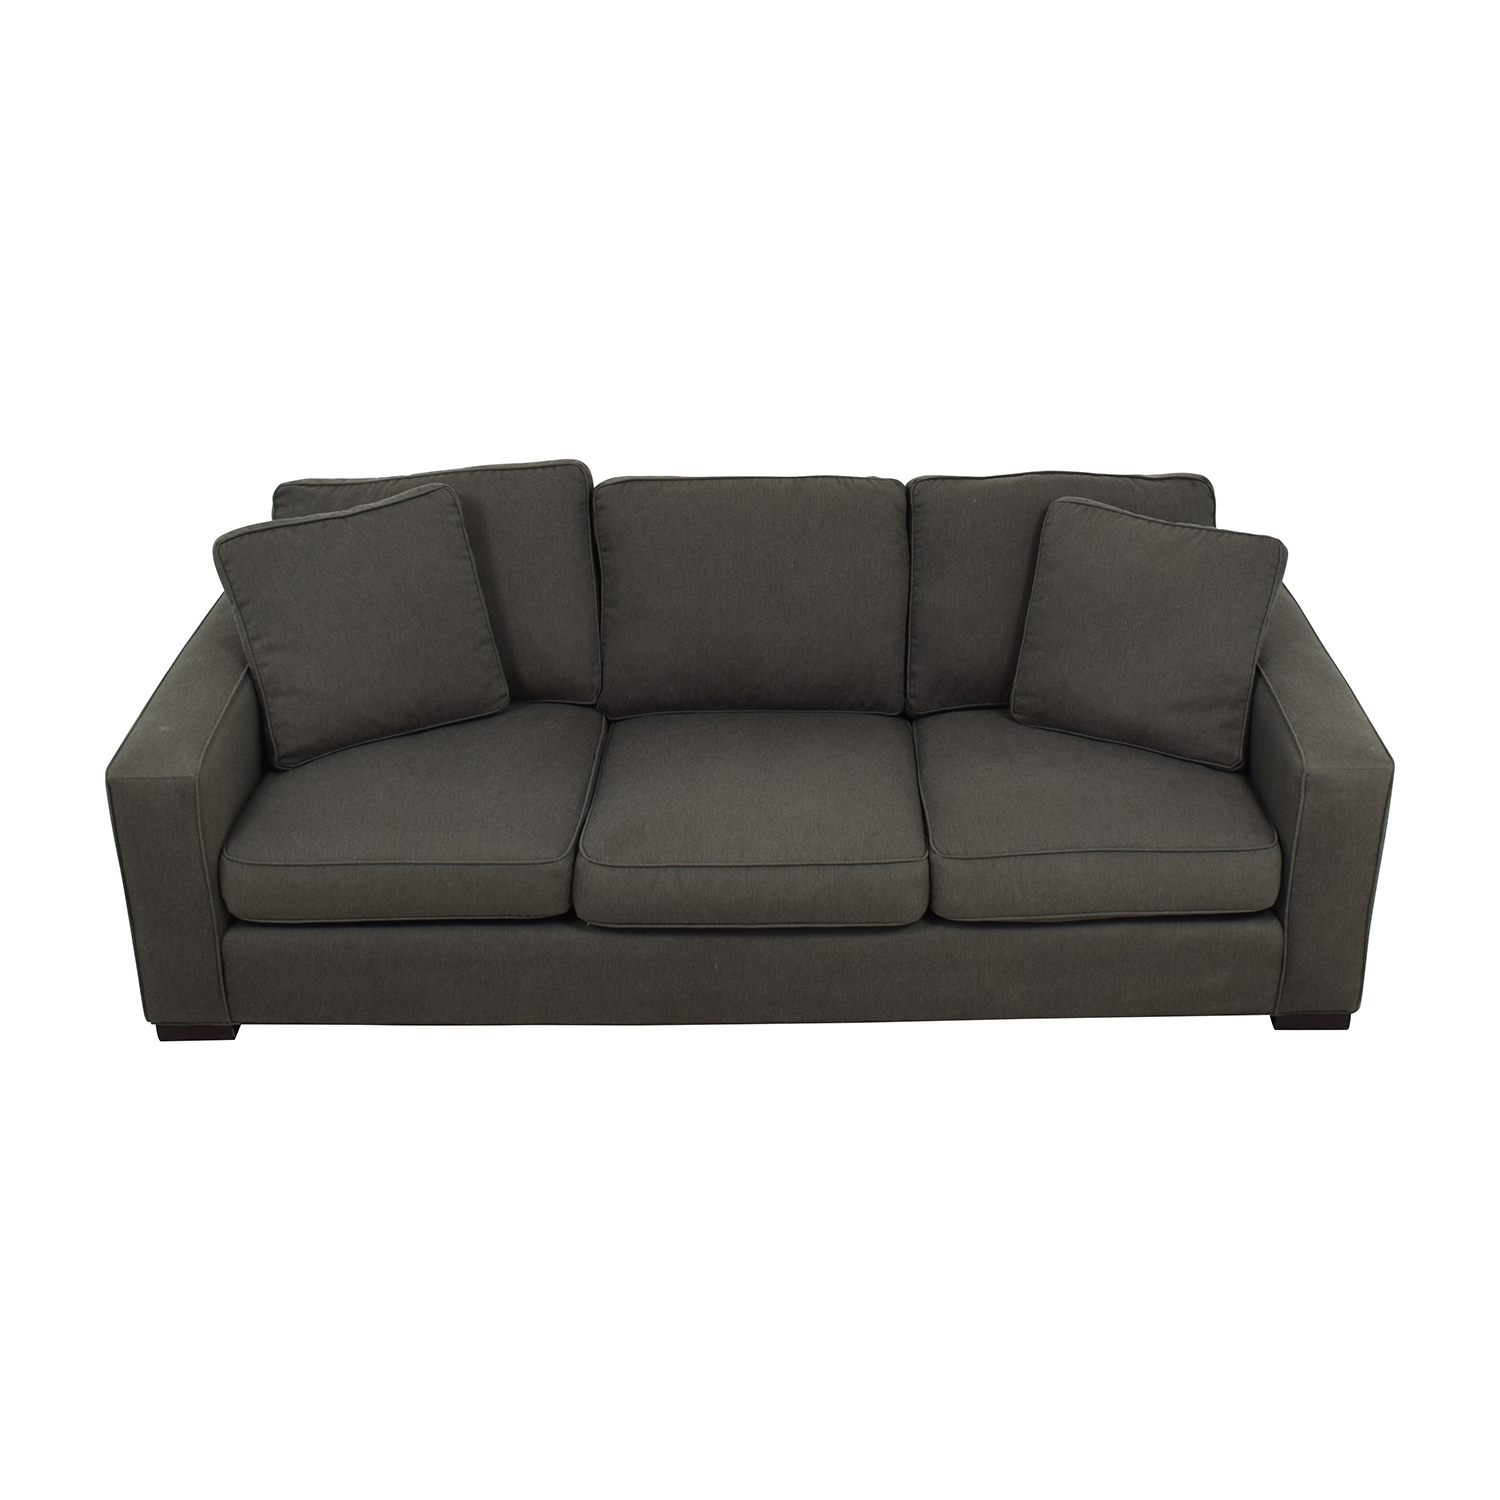 shop Room & Board Metro Sofa in Charcoal Room & Board